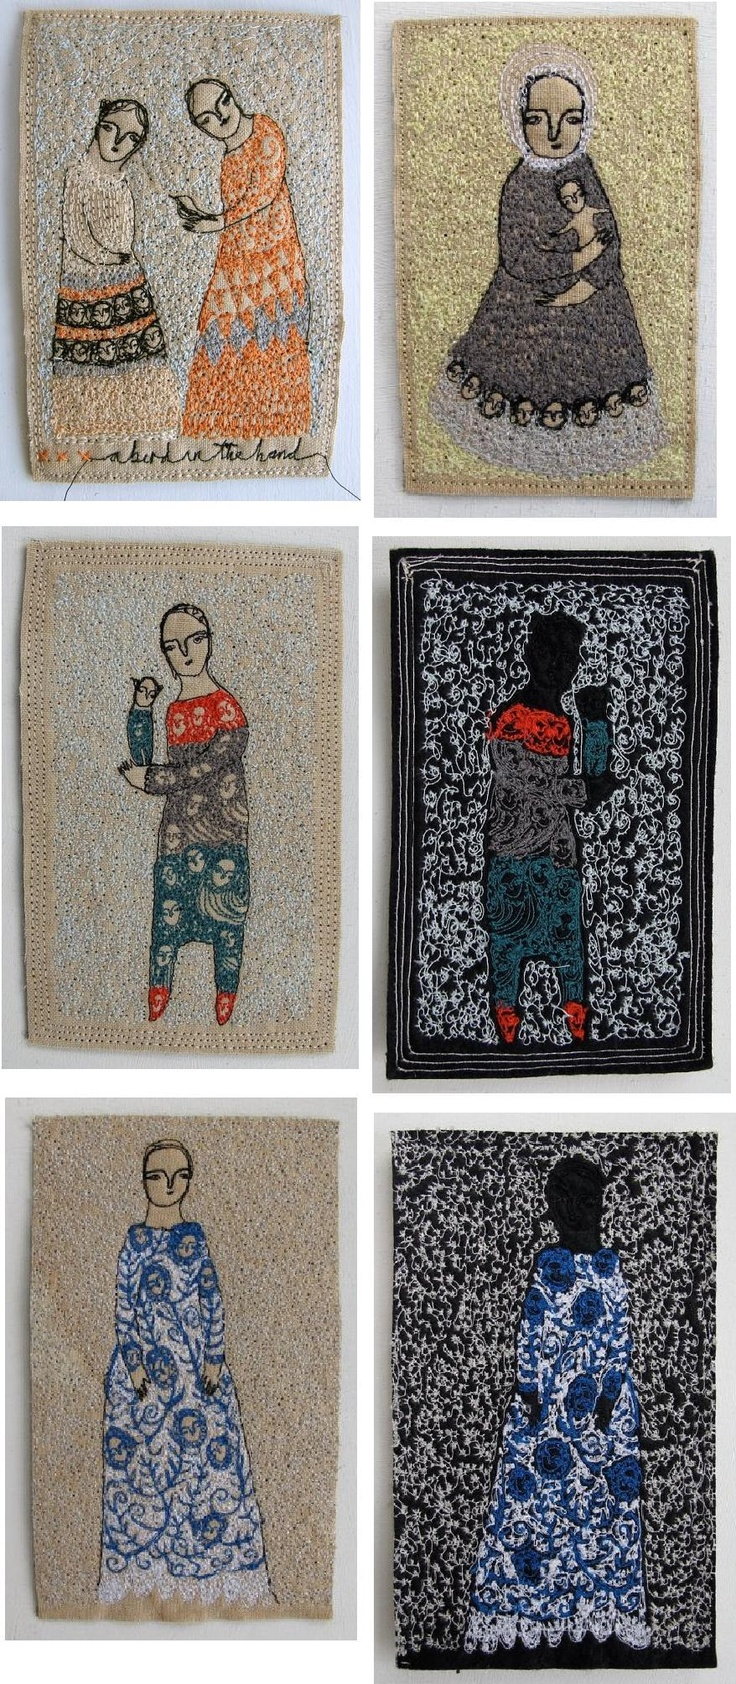 Cathy Cullis and her amazing painting with her sewing machine. Even the backs look interesting . . . machine embroidery